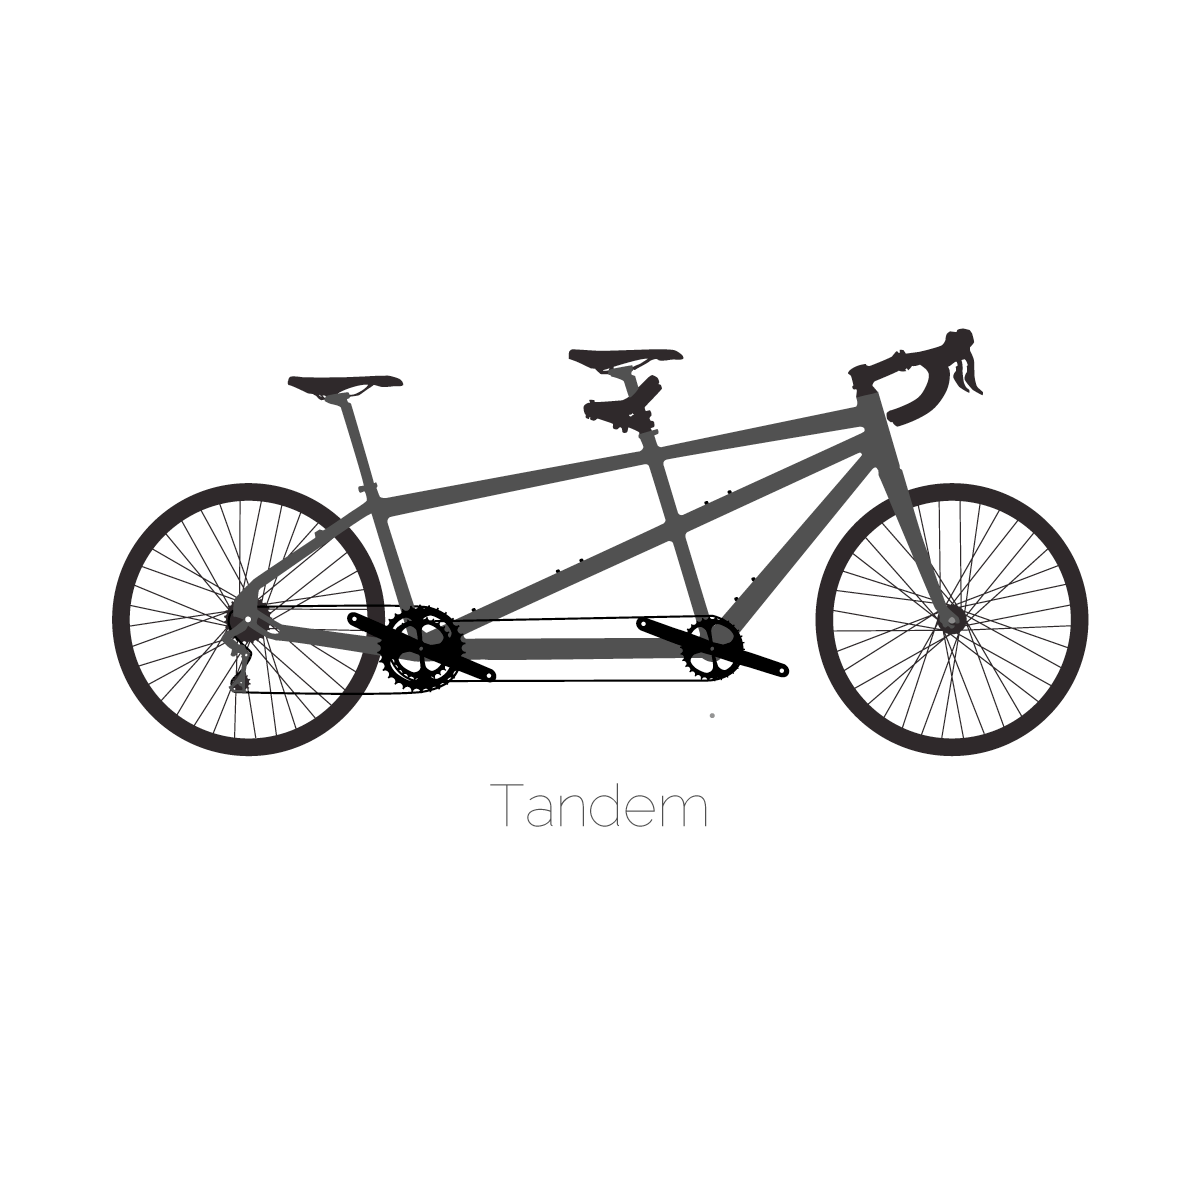 Bicycle Silhouette Illustrations